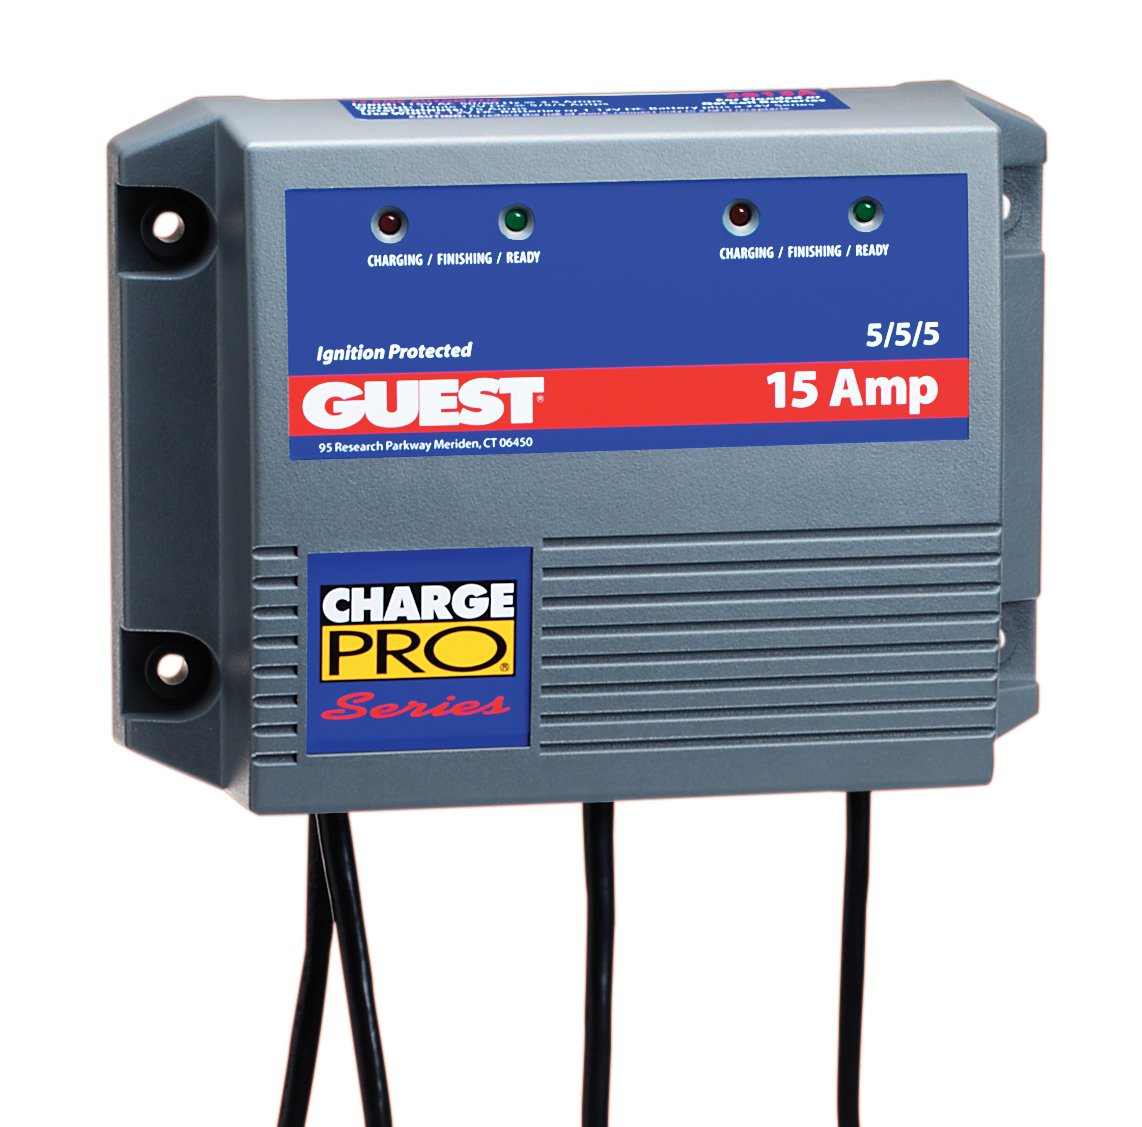 medium resolution of 15 amp triple output charge pro battery charger 15a 5 5 5 12 24 guest battery charger wiring diagram